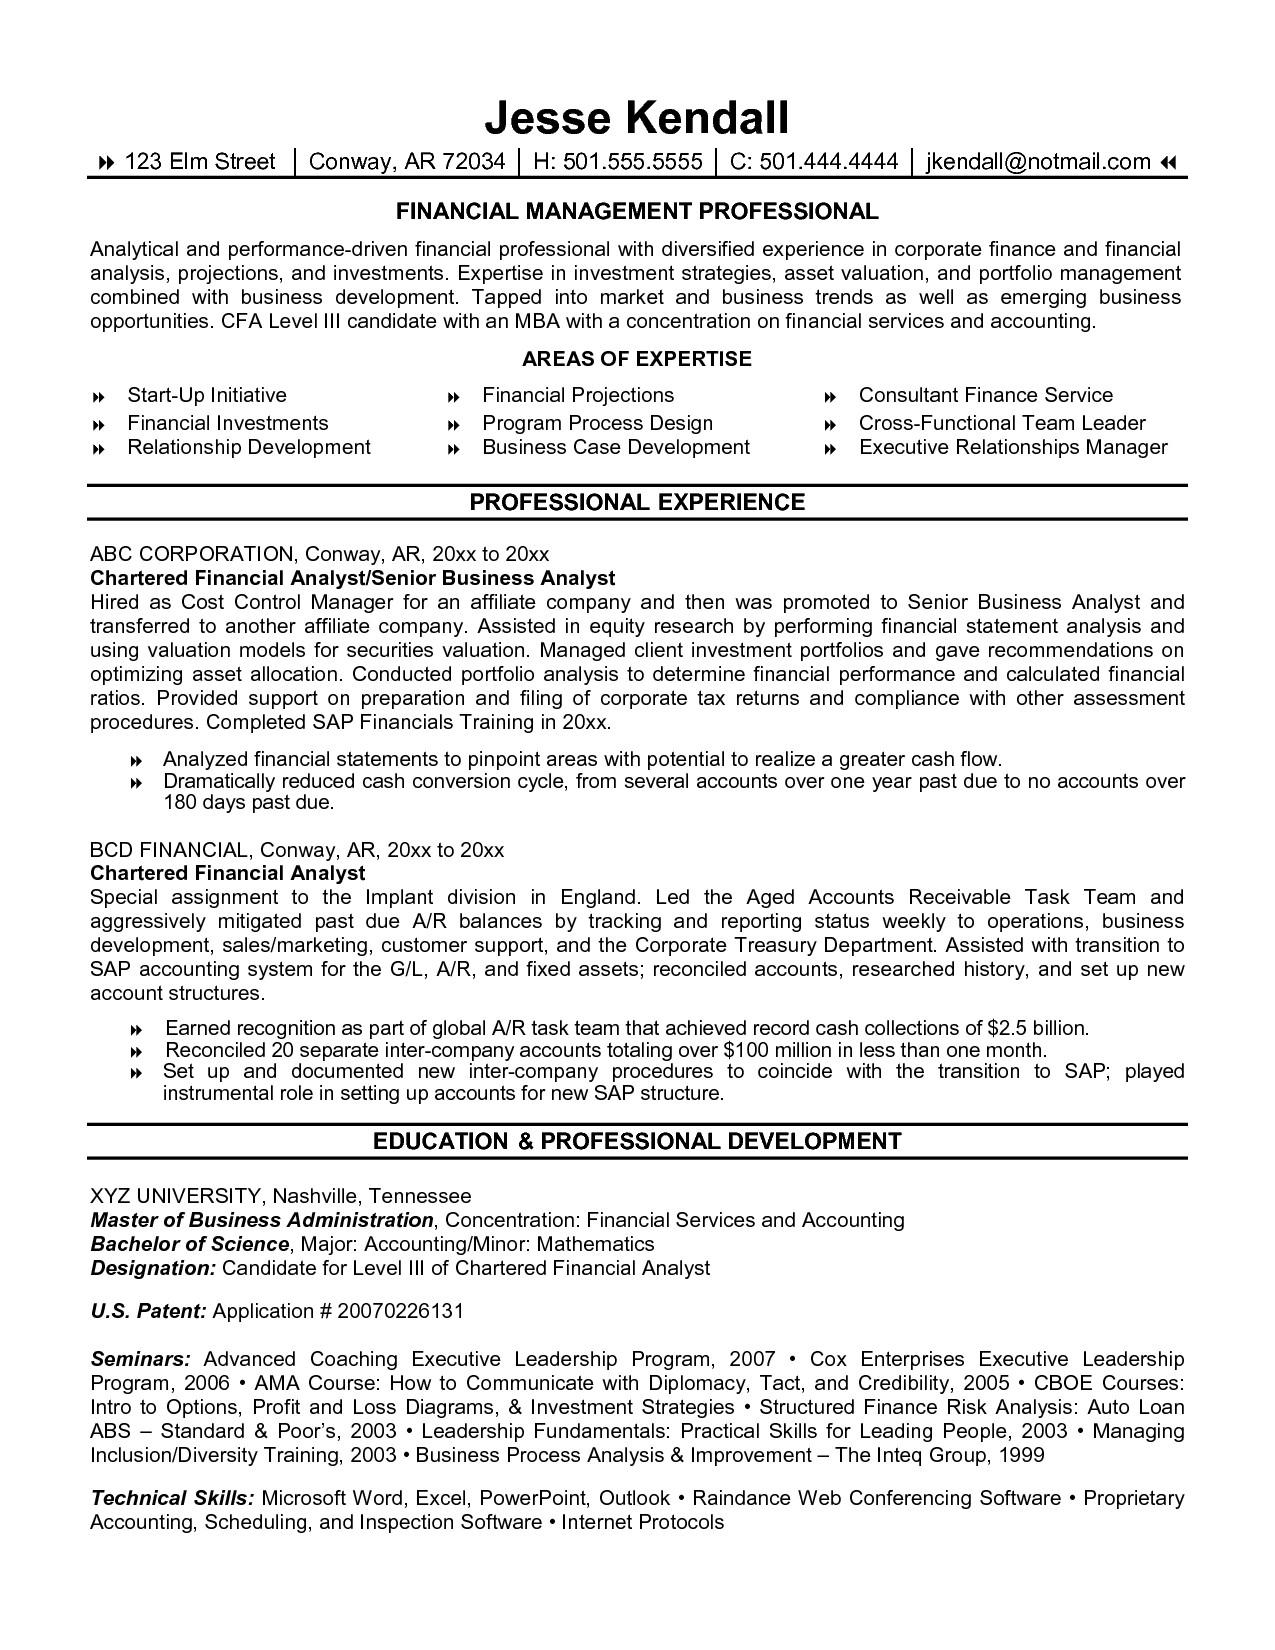 Accounting Analyst Resume Glamorous Resume Financial Analyst Best Format Amazing Finance Examples .